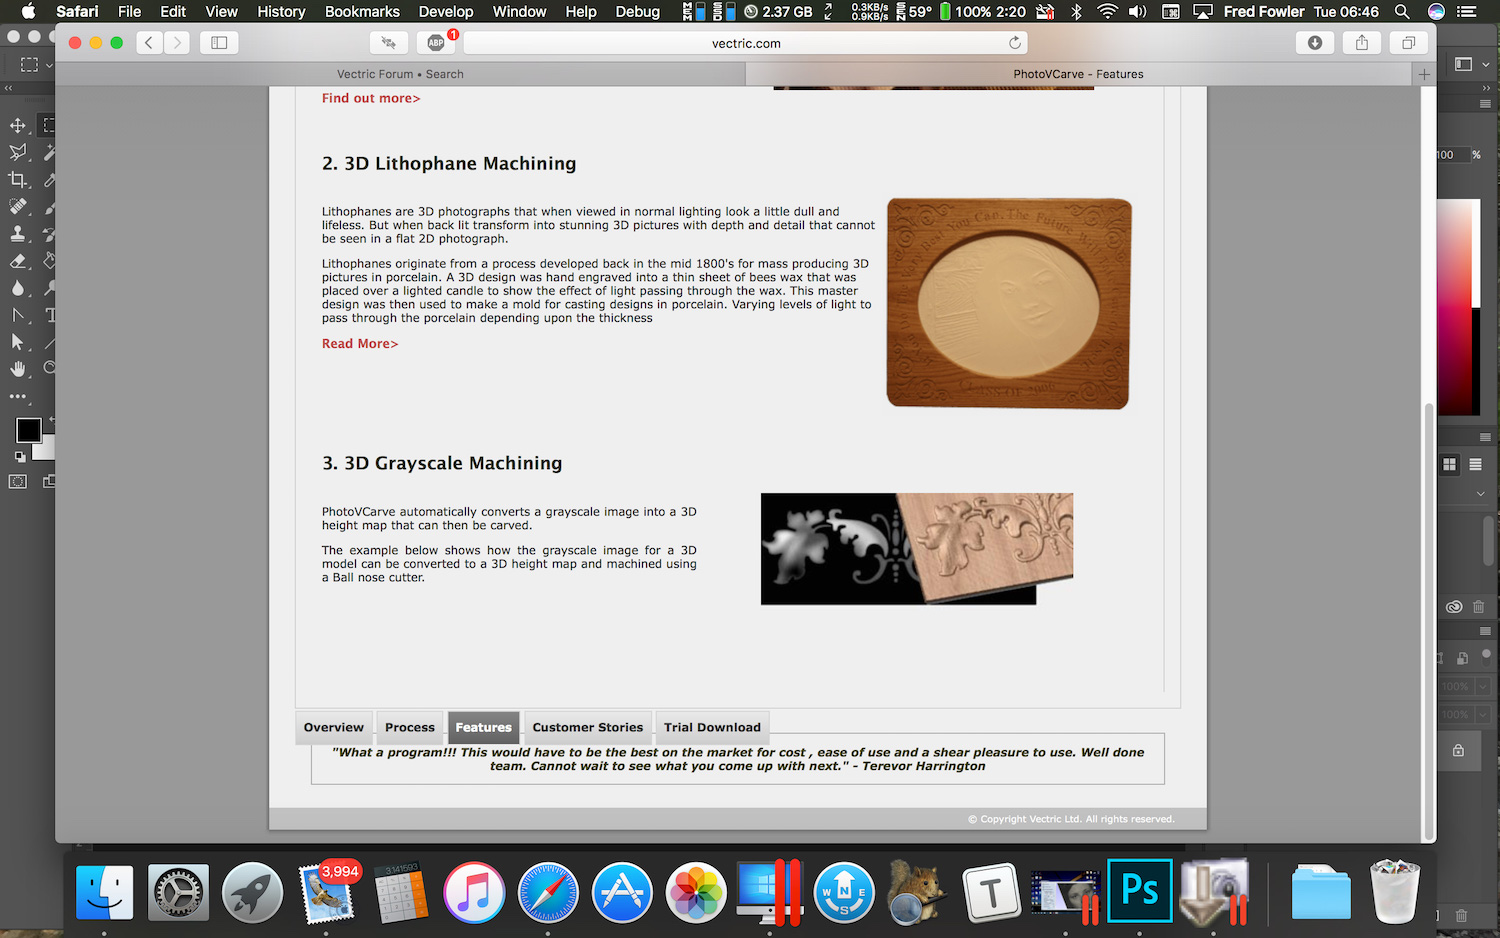 Screen Shot 2017-10-24 at 6.46.28 PM.jpg